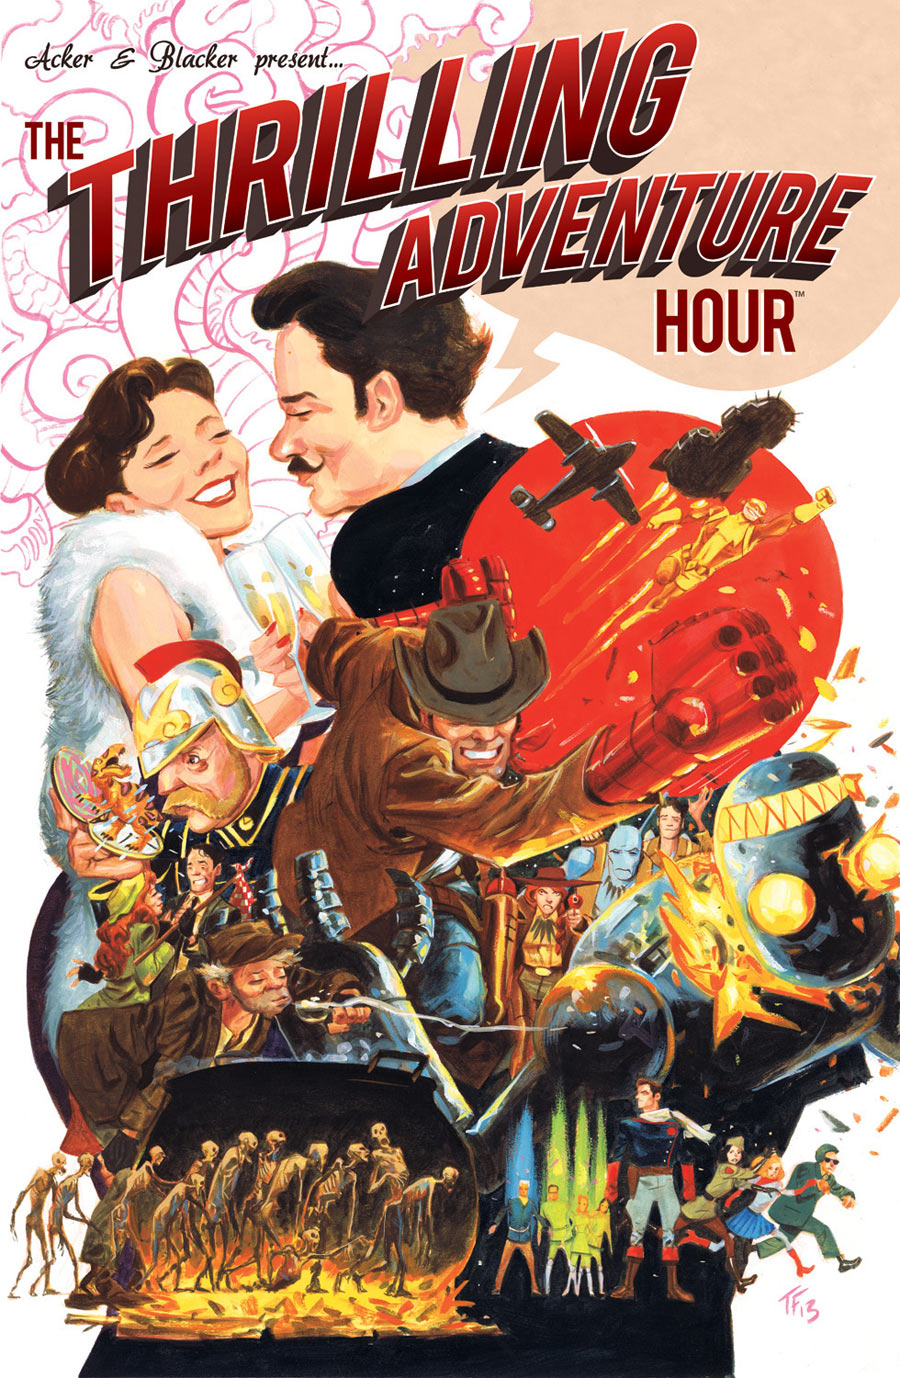 66-Thrilling-Adventure-Hour-f7835